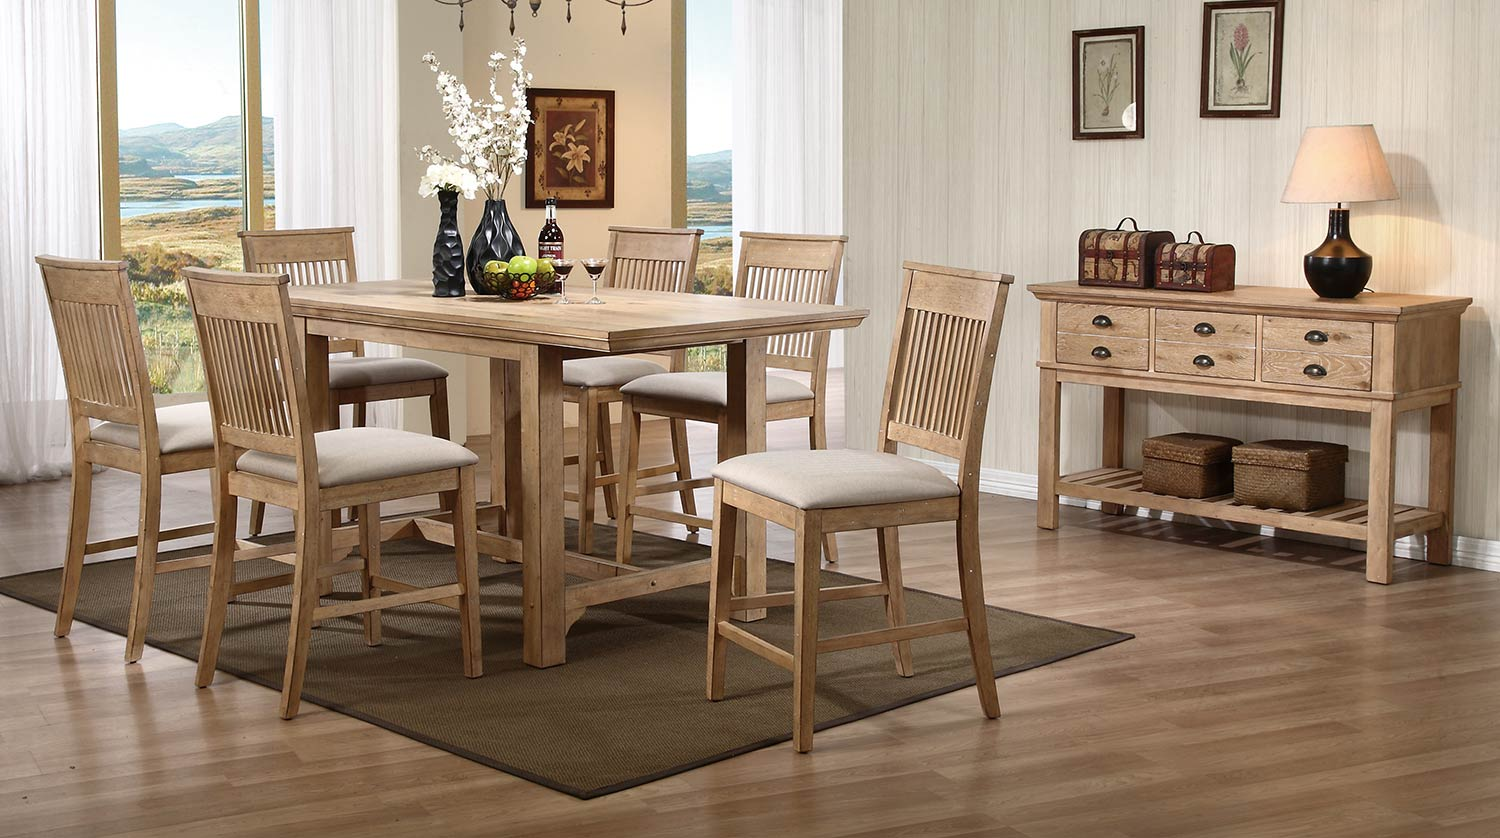 Homelegance Candace Counter Height Dining Set - Natural